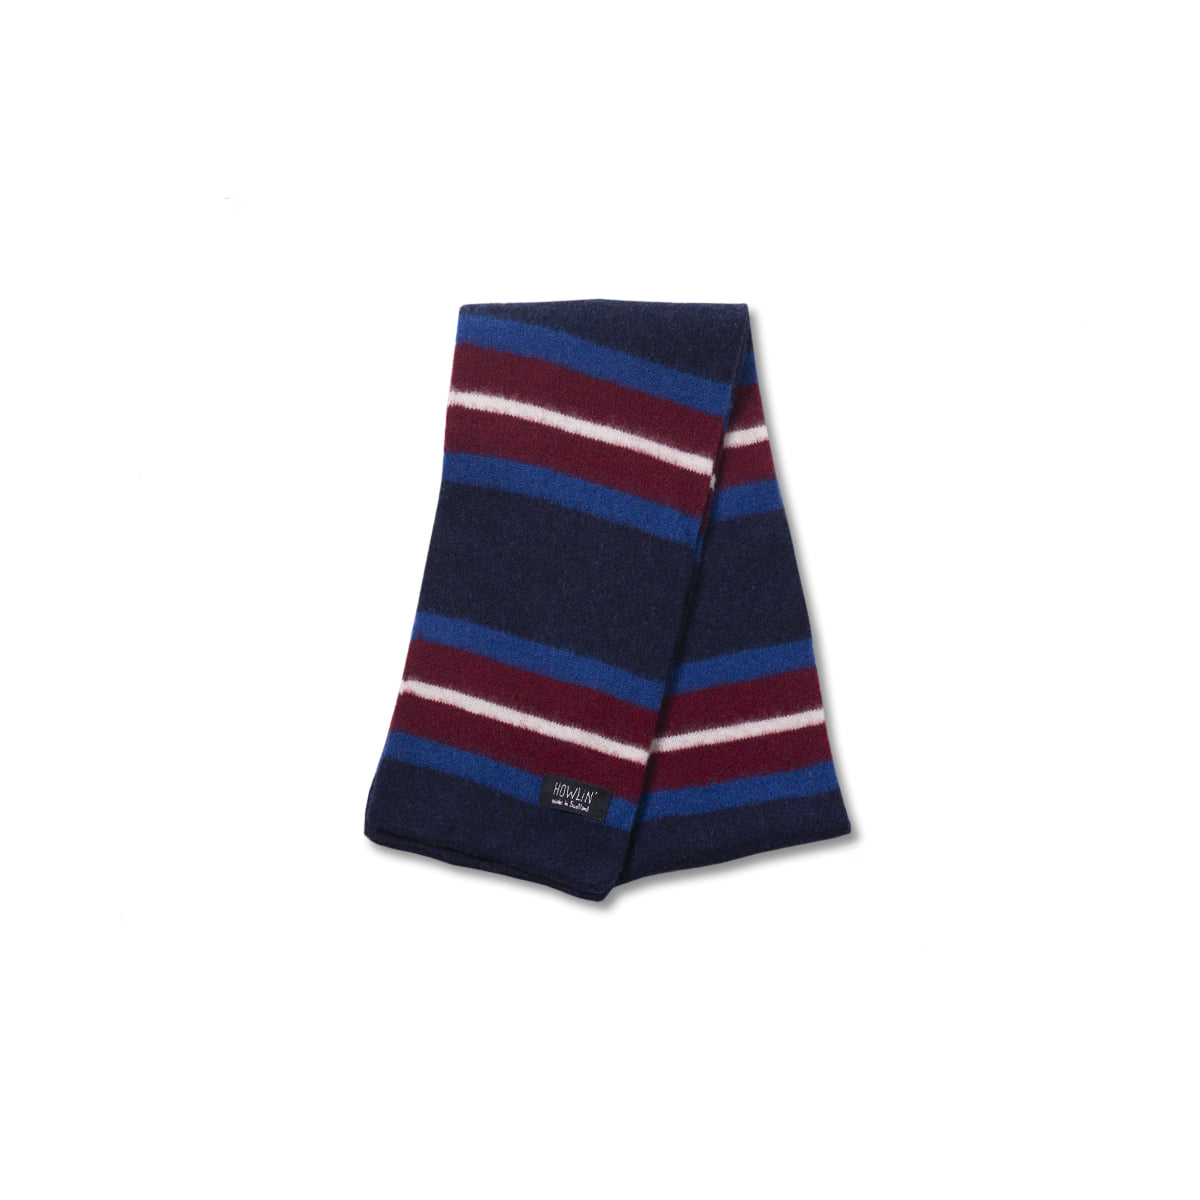 [HOWLIN] COLLEGE CAN BE FUN SCARF 'NAVY'